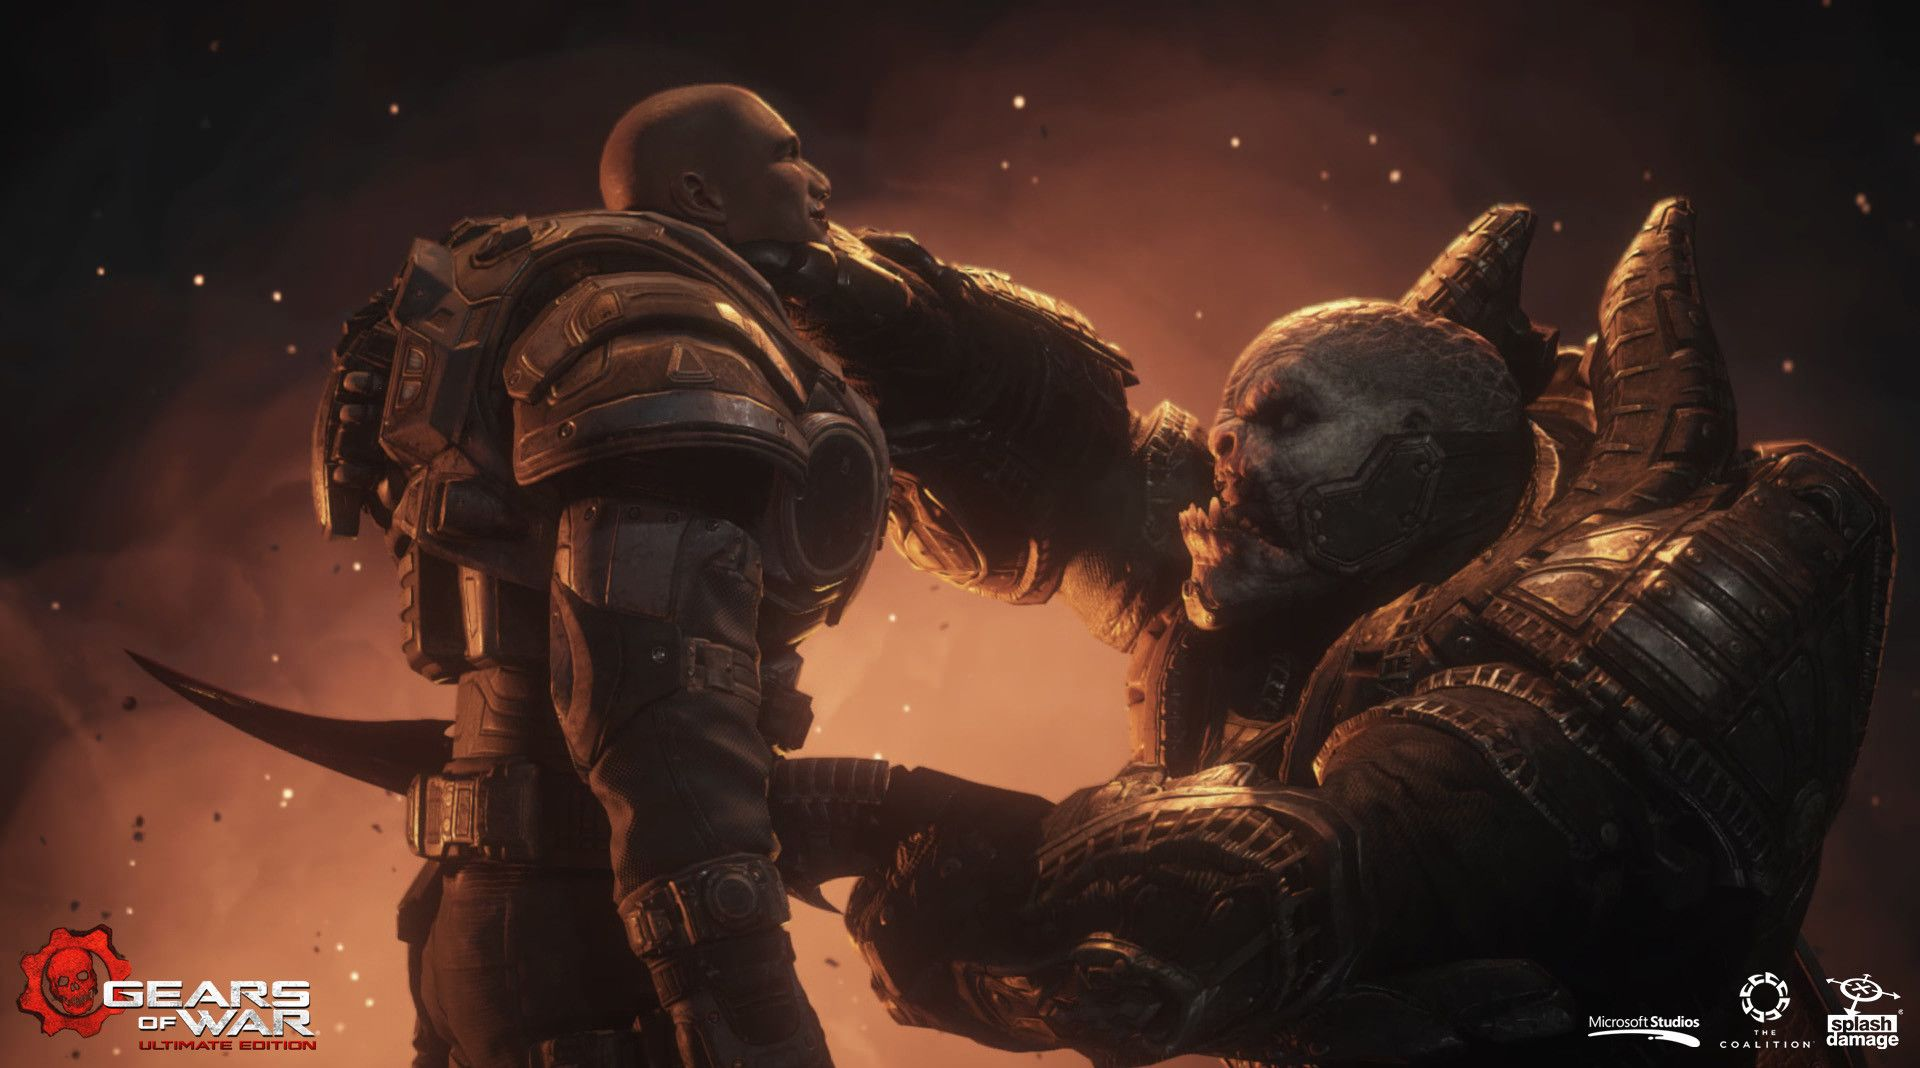 Gears of war ultimate edition pc patch download pc